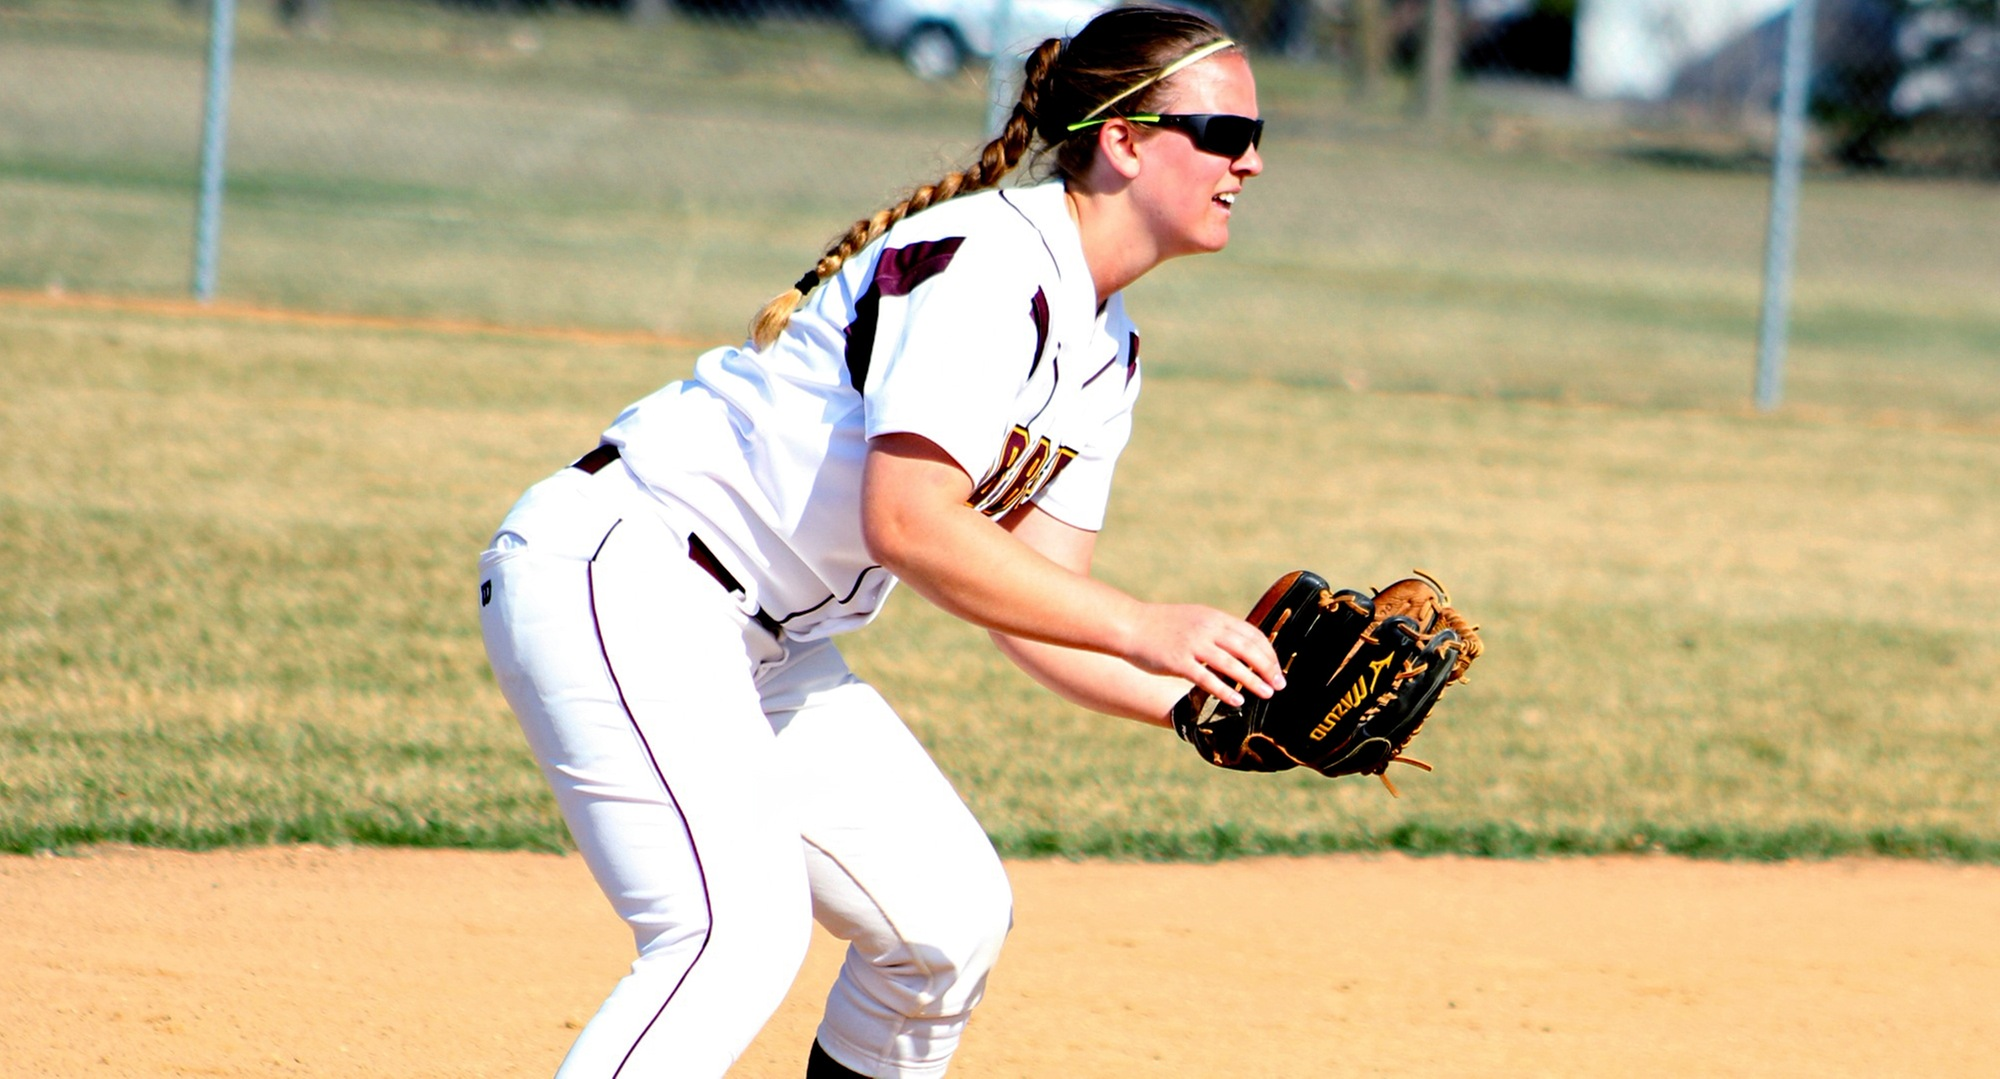 Junior Devonie Smith had a hit in both games in the Cobbers' doubleheader at Bethel.